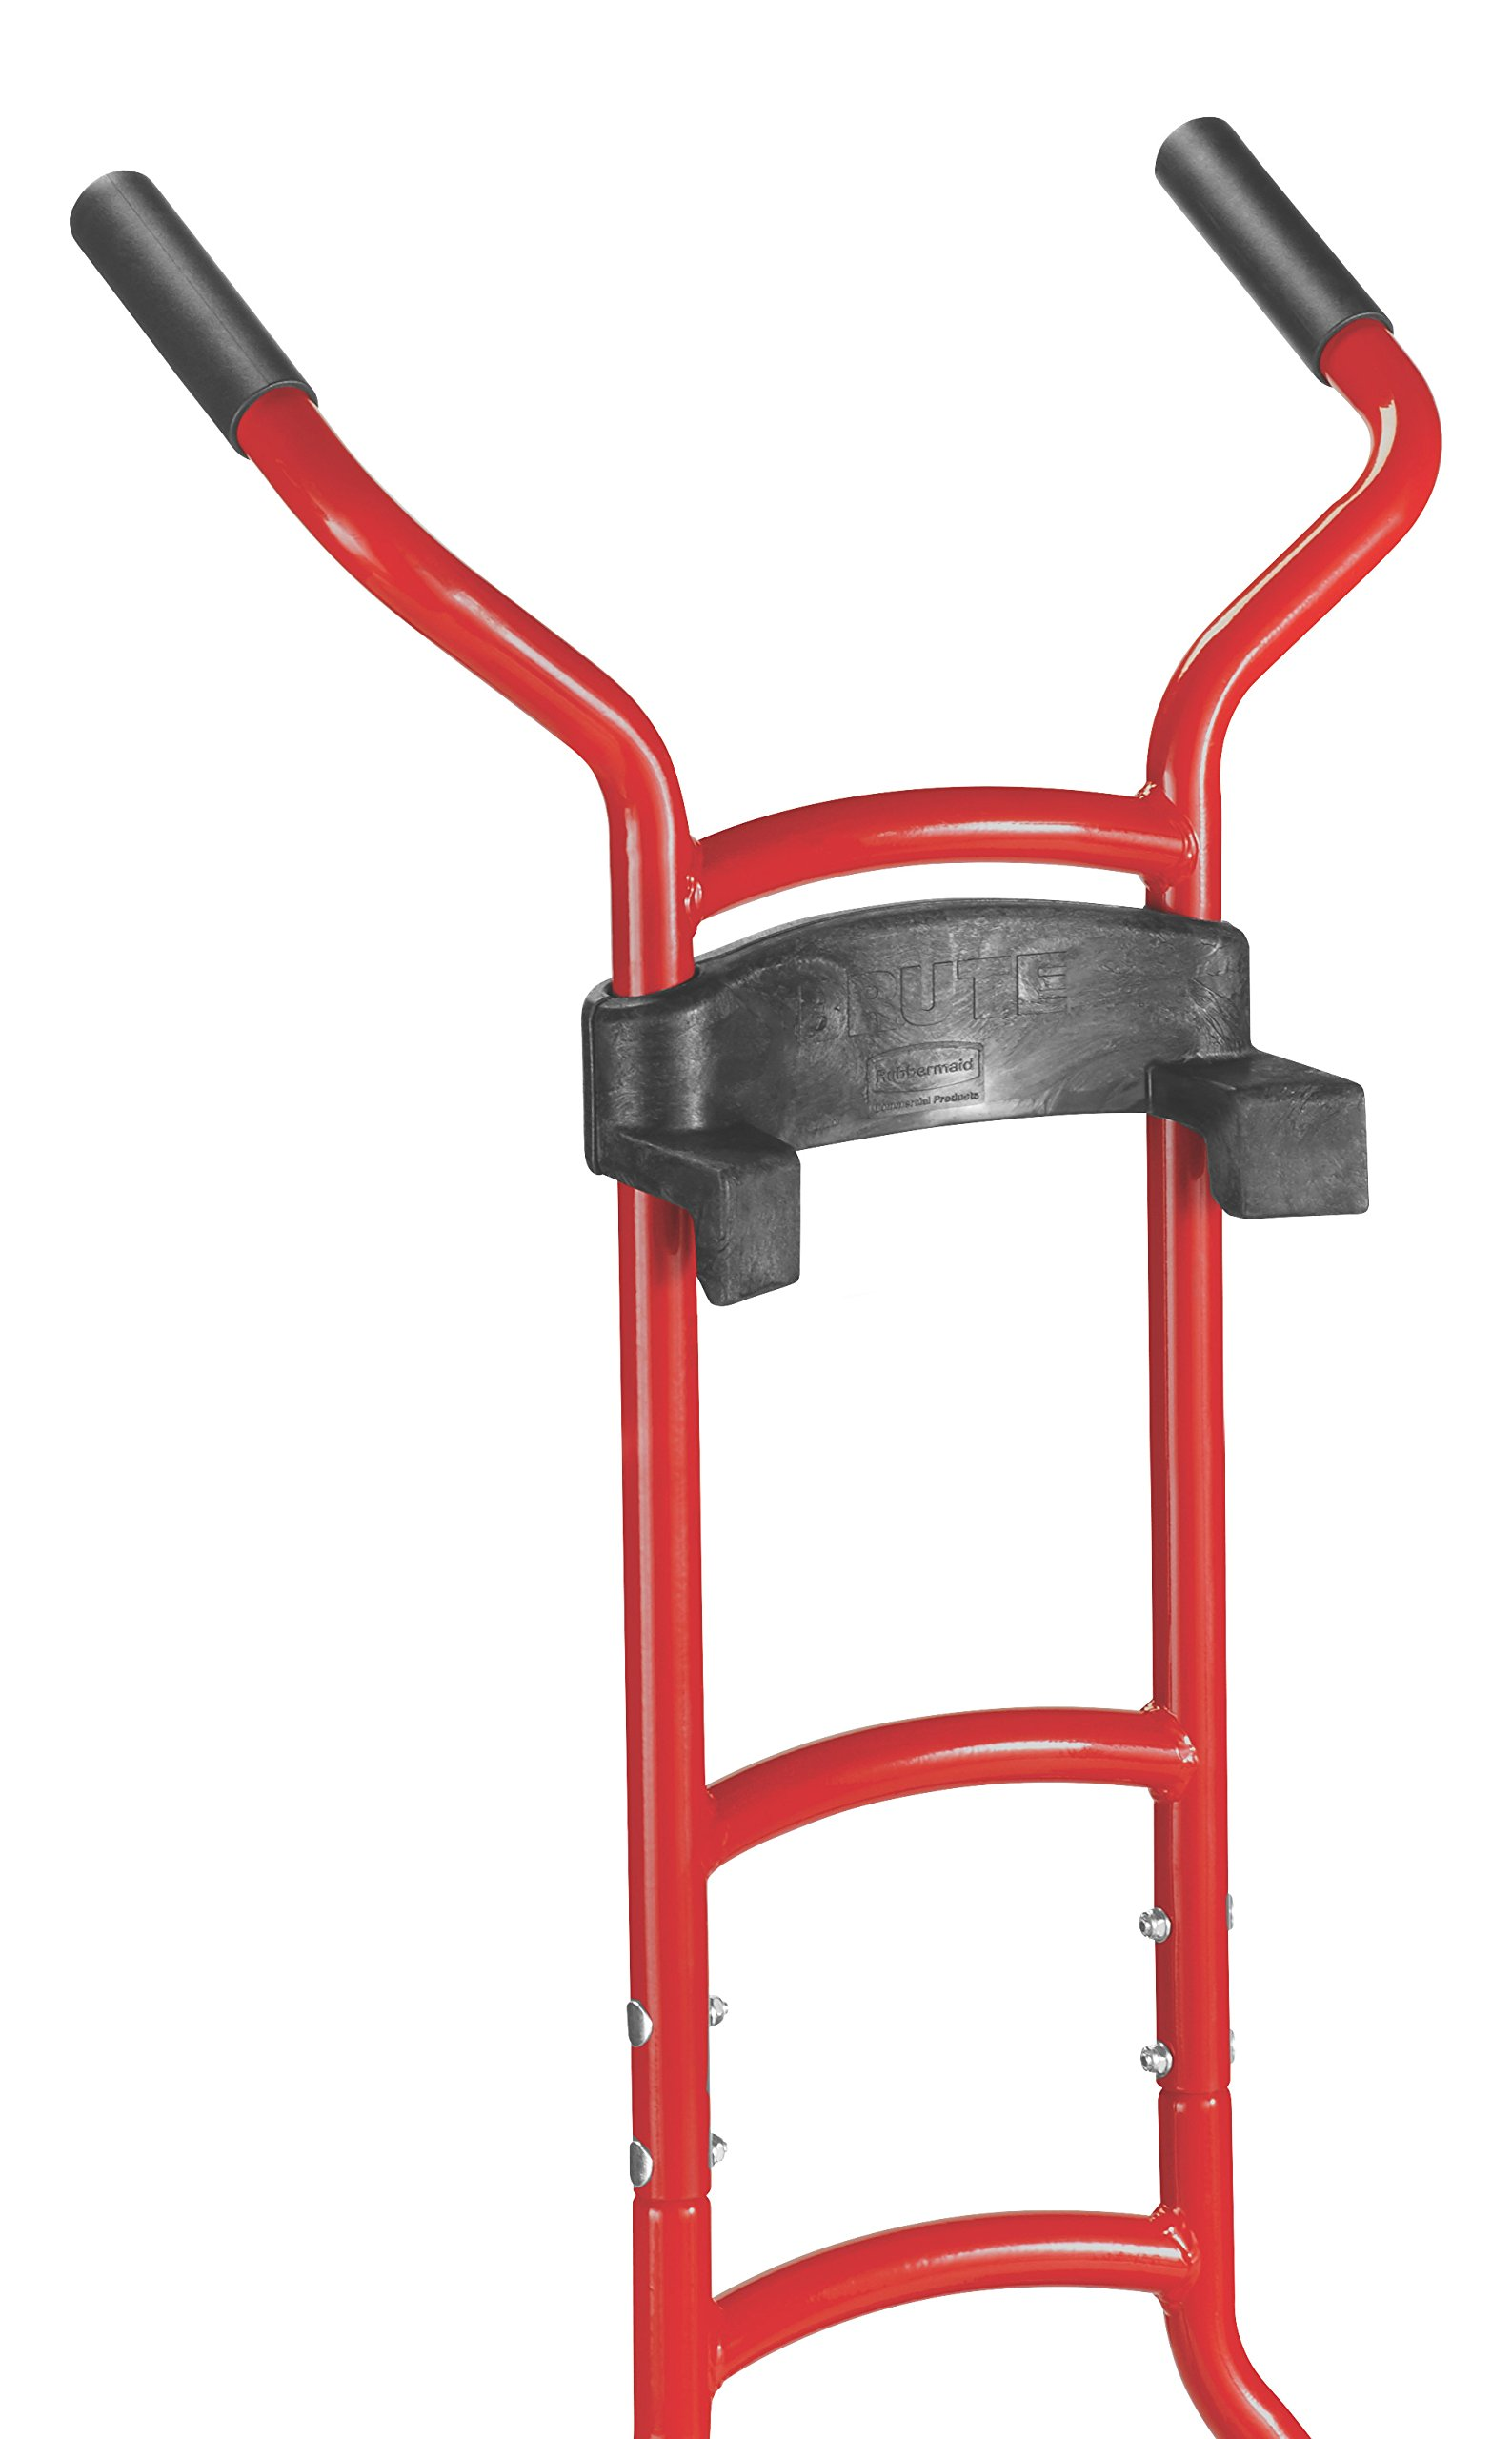 Rubbermaid Commercial Products Brute Construction and Landscape Dolly (1997410) by Rubbermaid Commercial Products (Image #9)